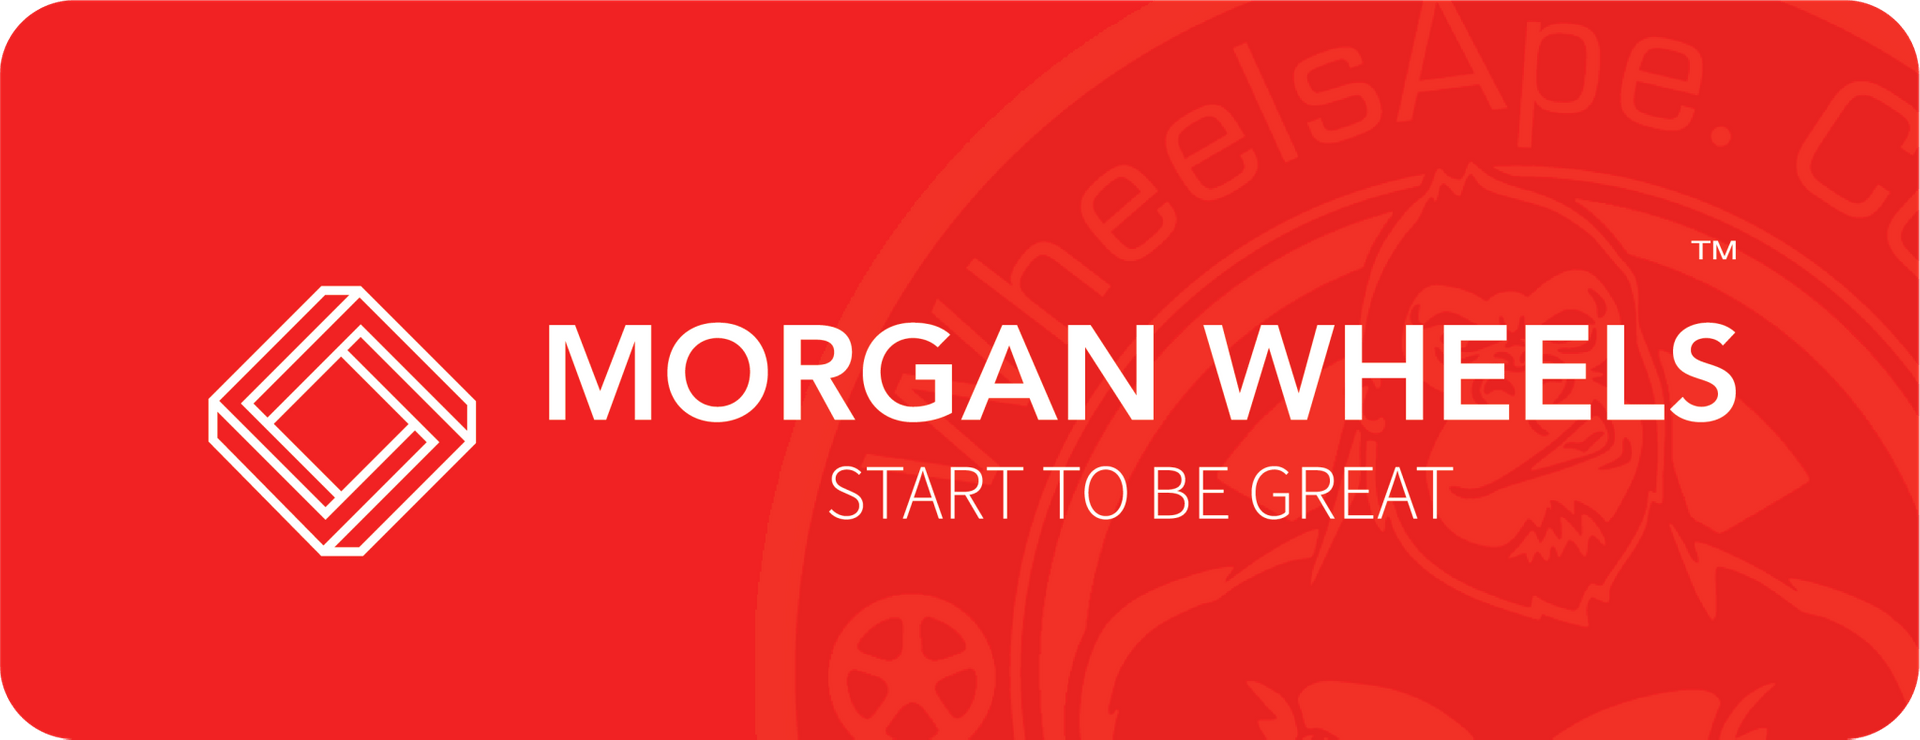 morgan-wheels